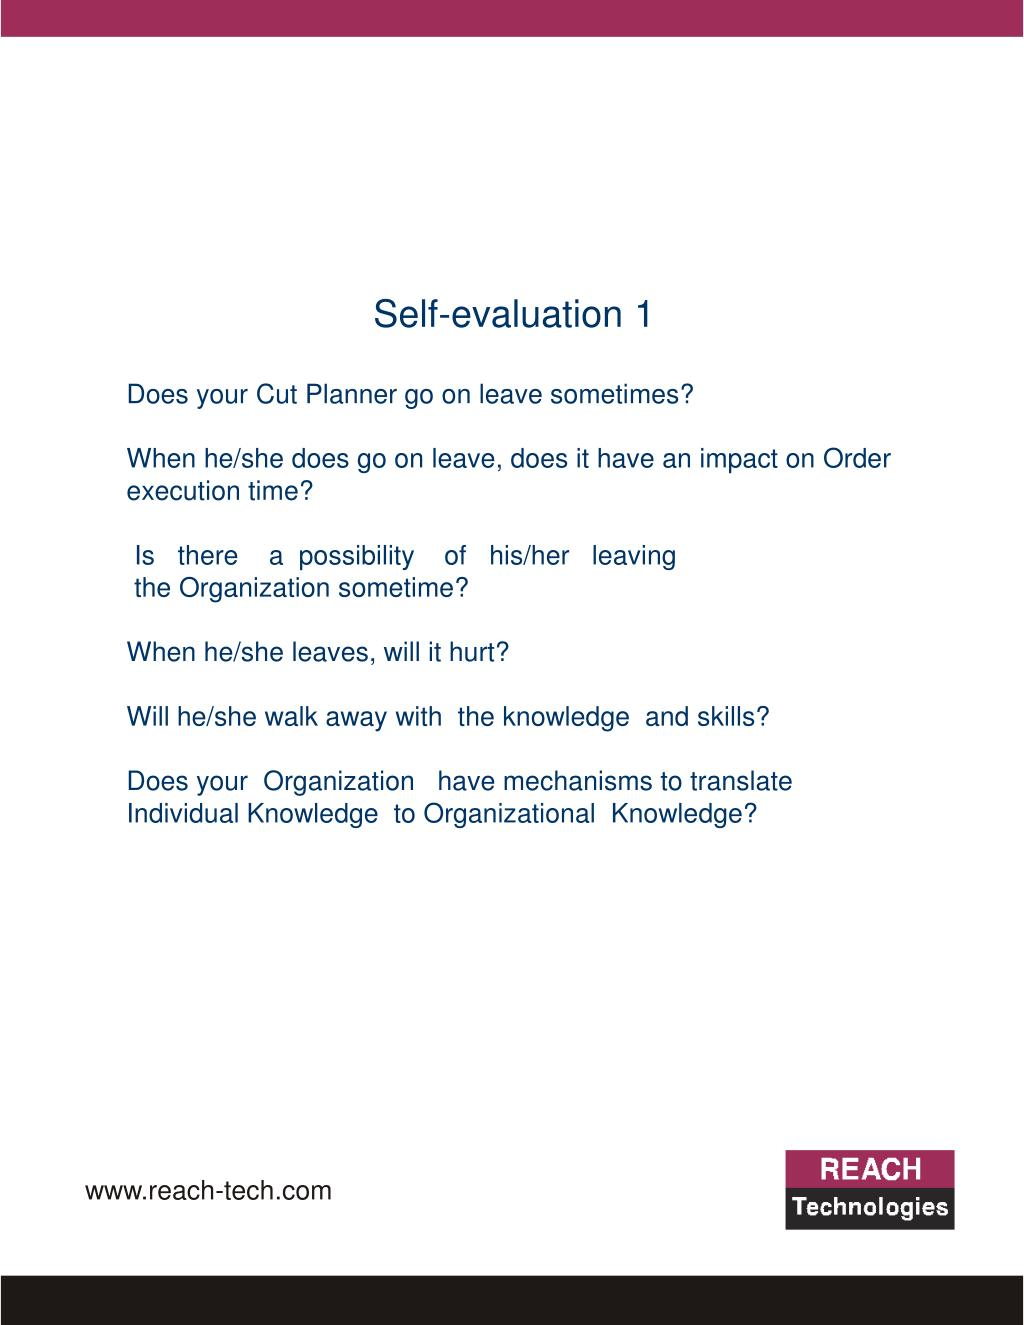 Self-evaluation 1